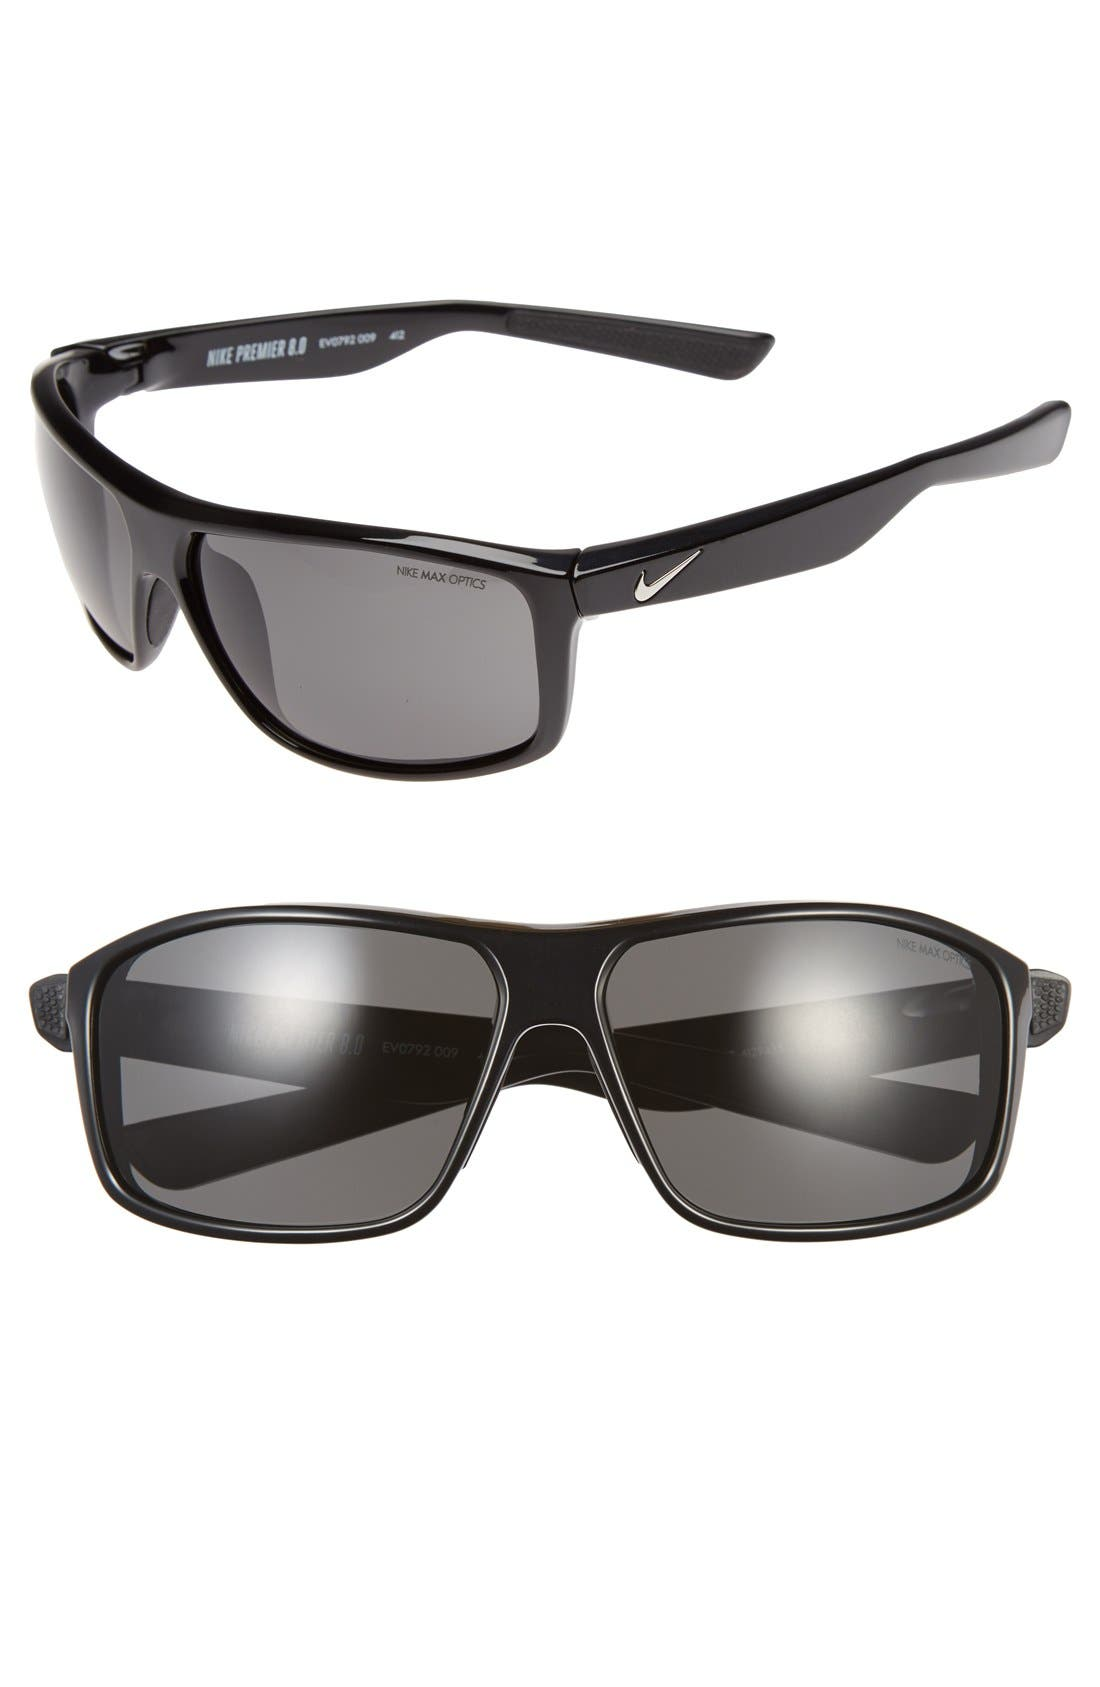 NIKE Premier 8.0 63mm Sunglasses